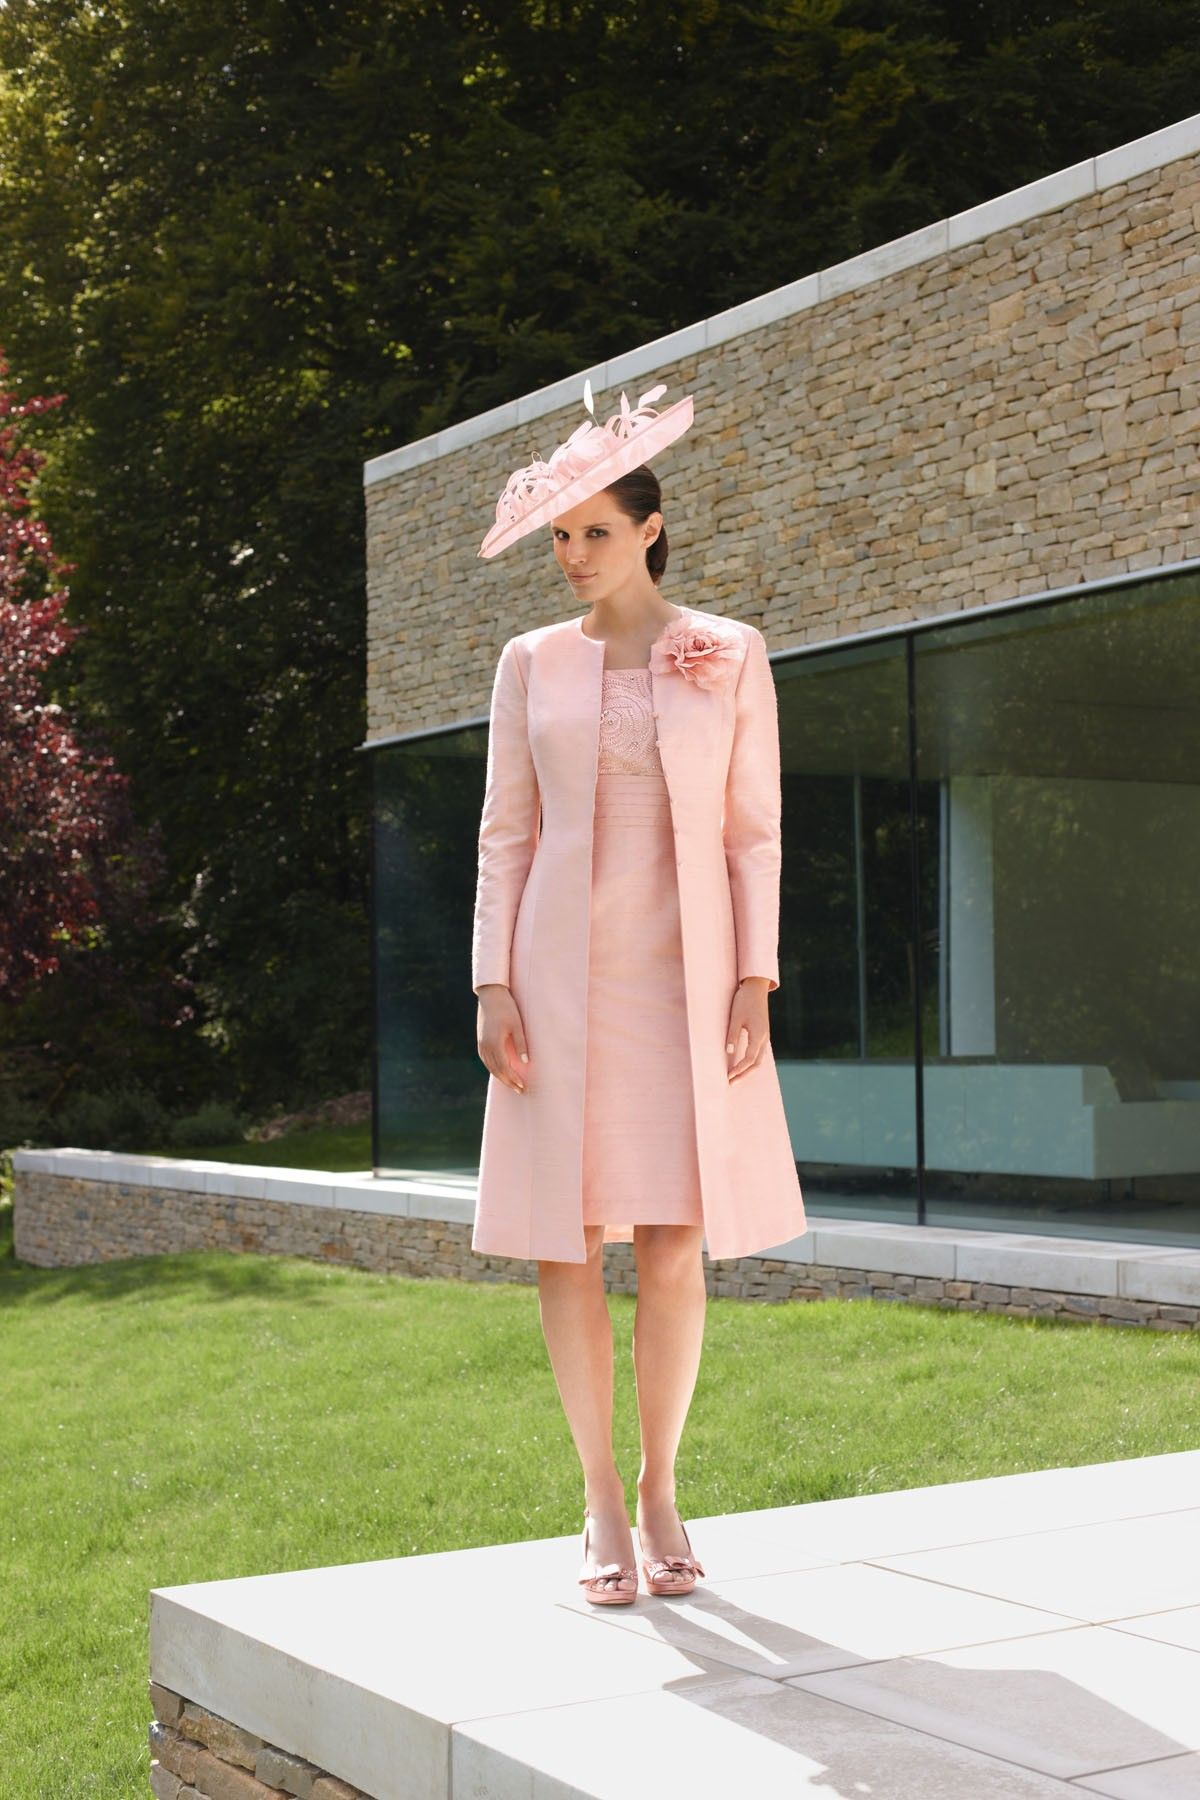 Condici Ballet Pink silk dress and coat (style 90270) and Hat (style 9173)